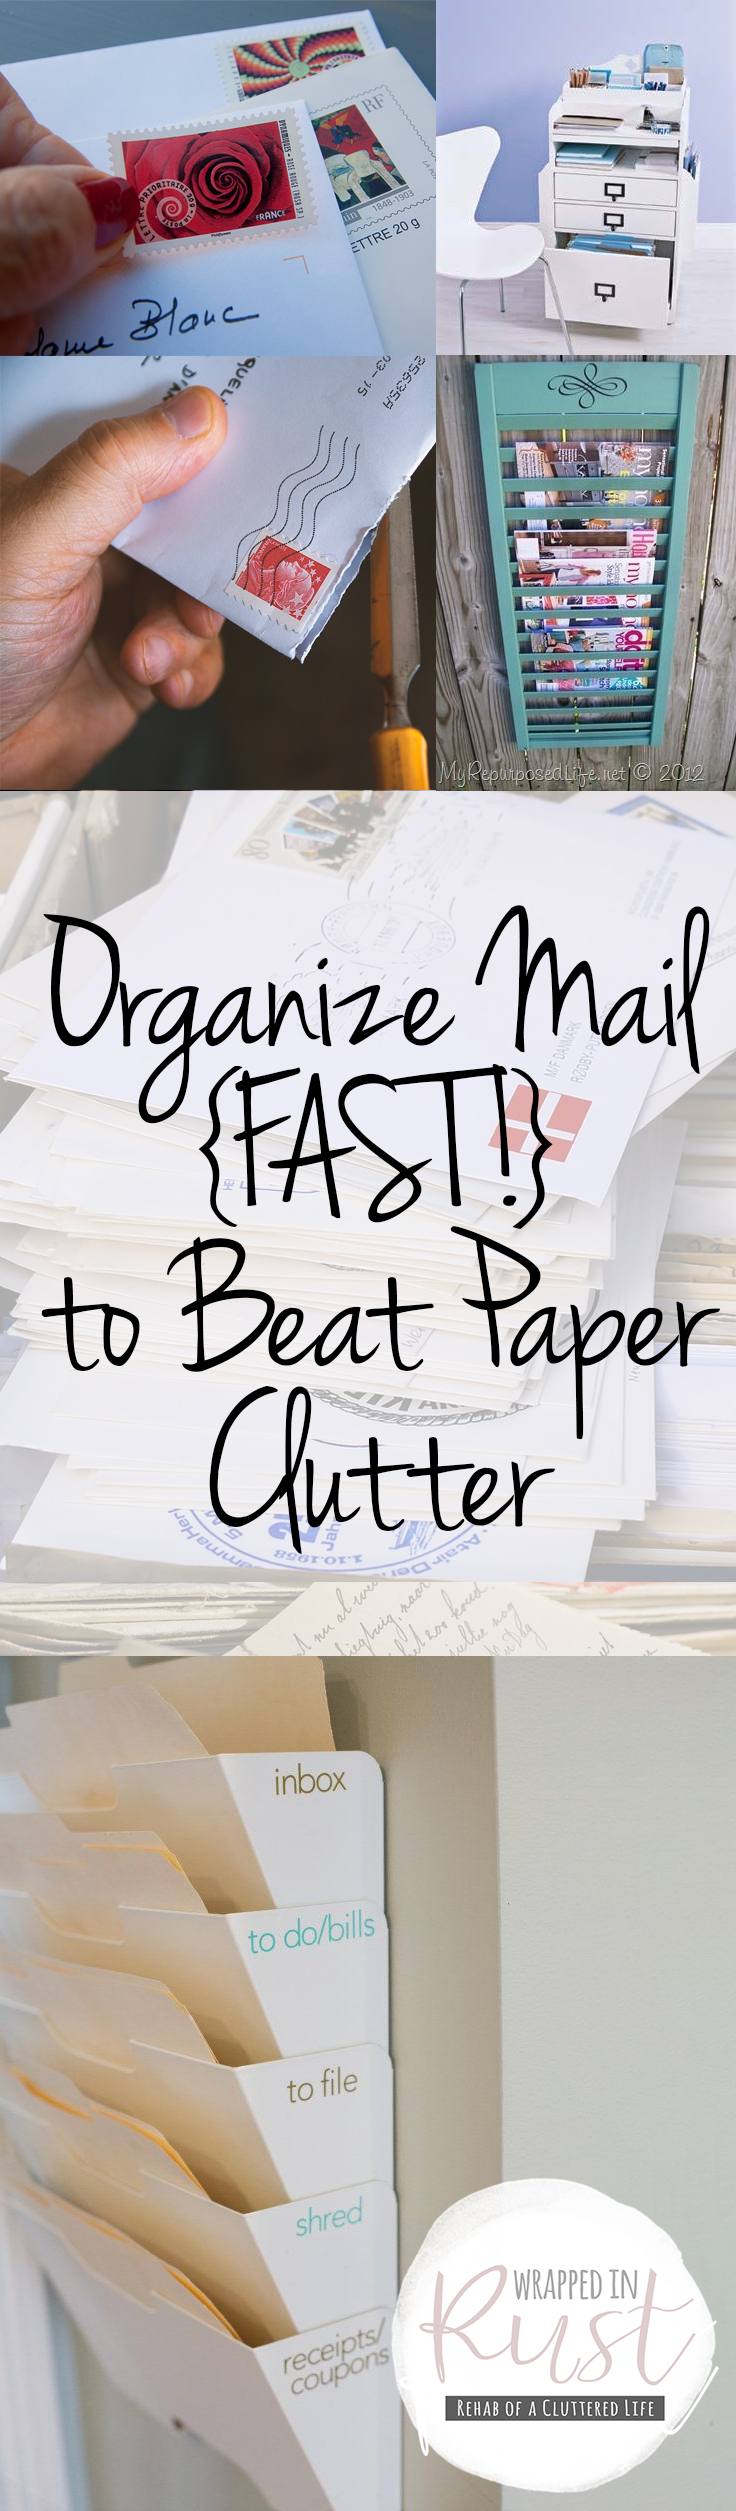 Organize mail fast to beat paper clutter wrapped in rust for How to get rid of clutter in your home